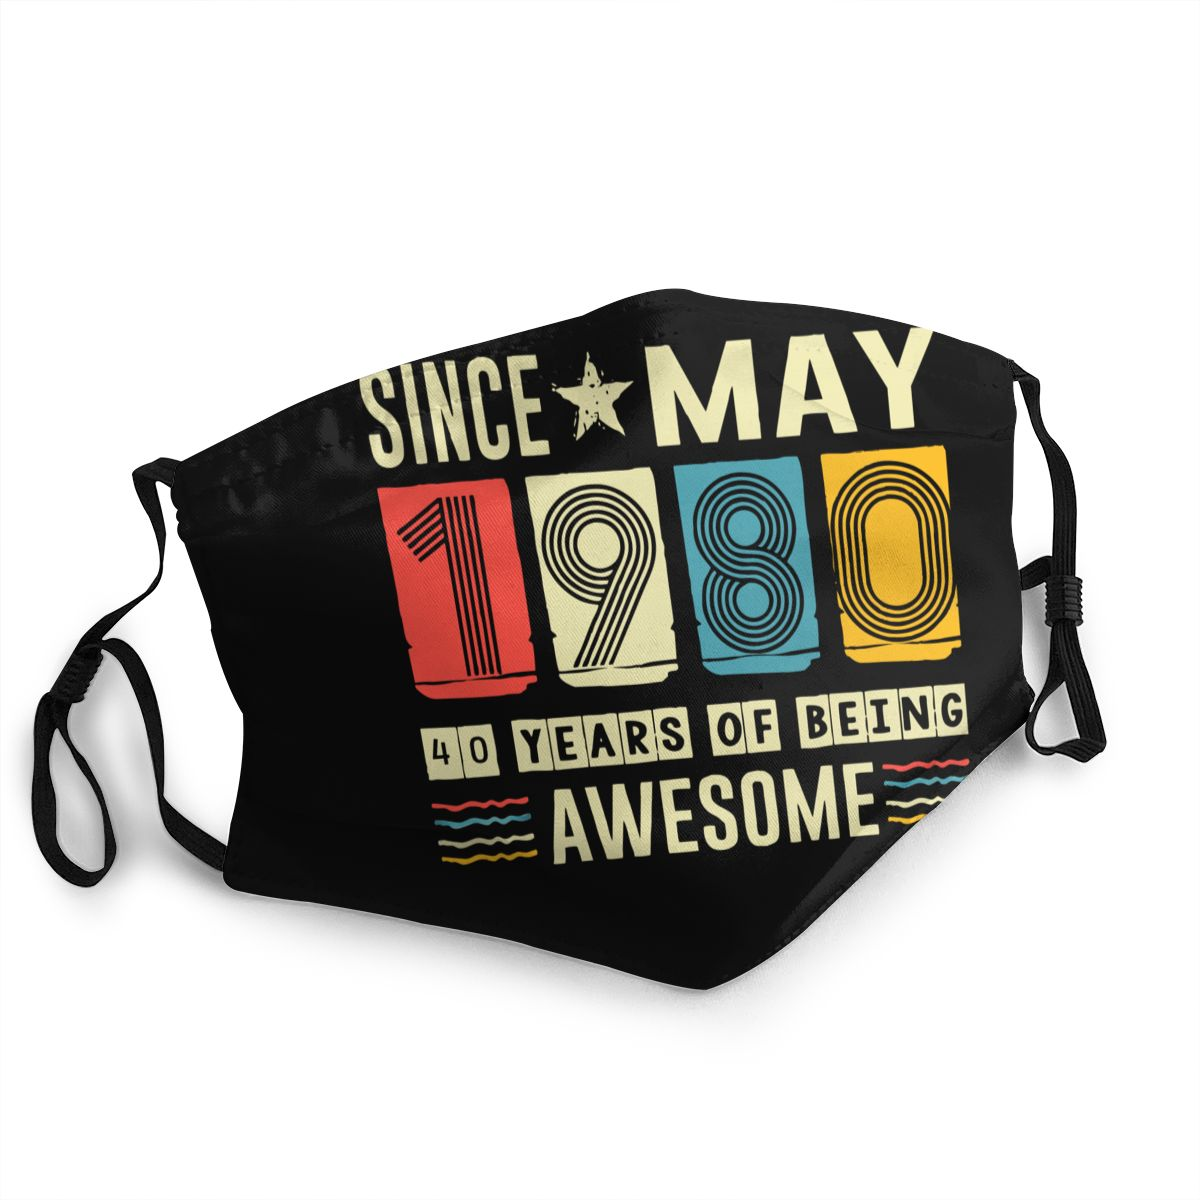 Since May 1980 Shirt 40 Years Old Birthday Gift Non-Disposable Mouth Face Mask Anti Haze Dust Mask Protection Respirator Muffle